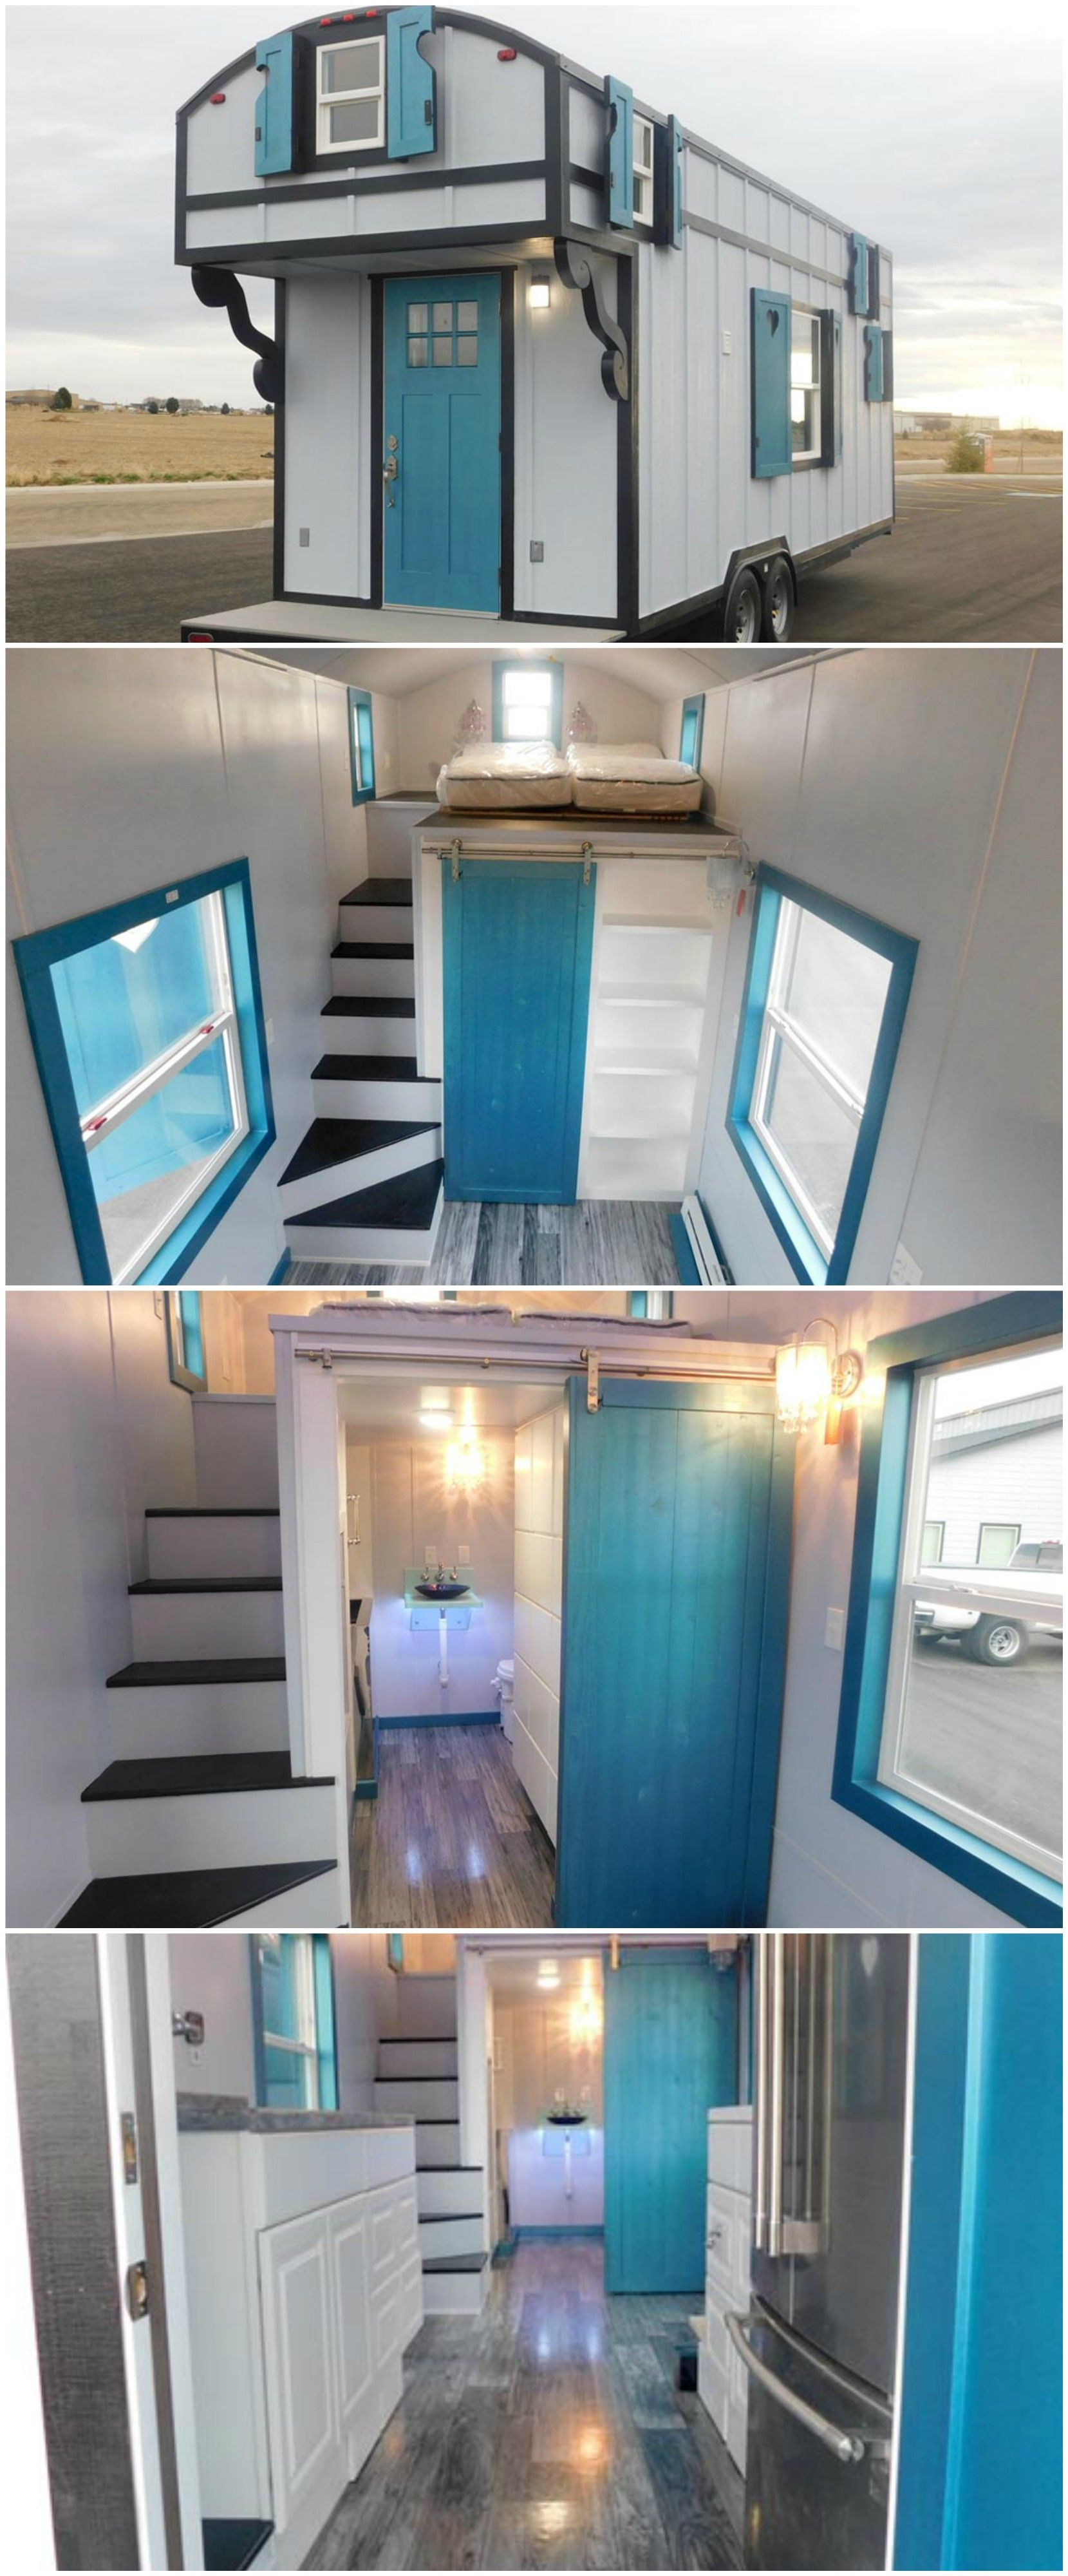 French storyteller by tiny idahomes houses on wheels for sale also rh pinterest